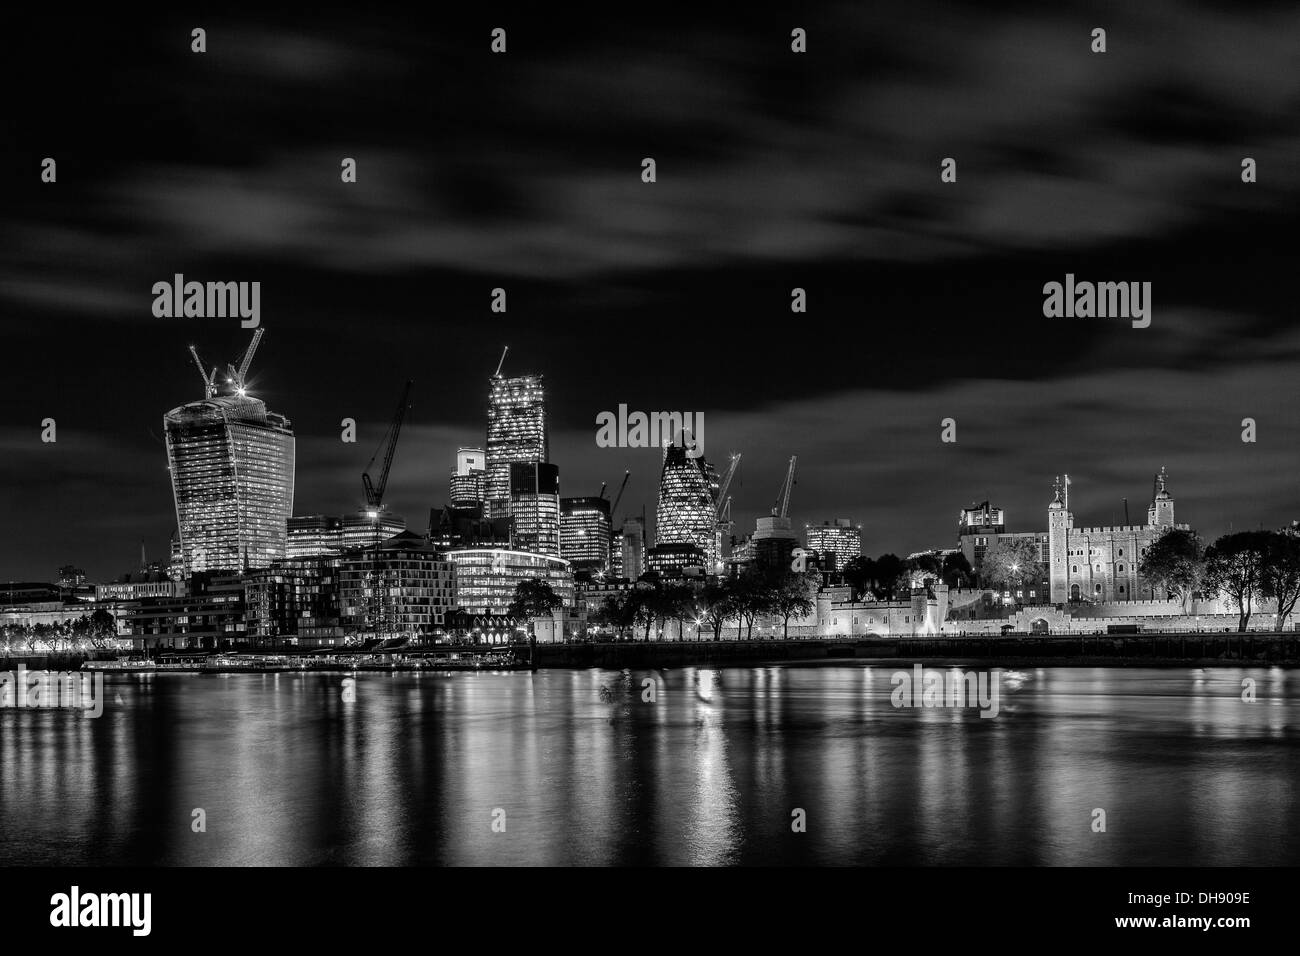 The City of London at Night - Stock Image